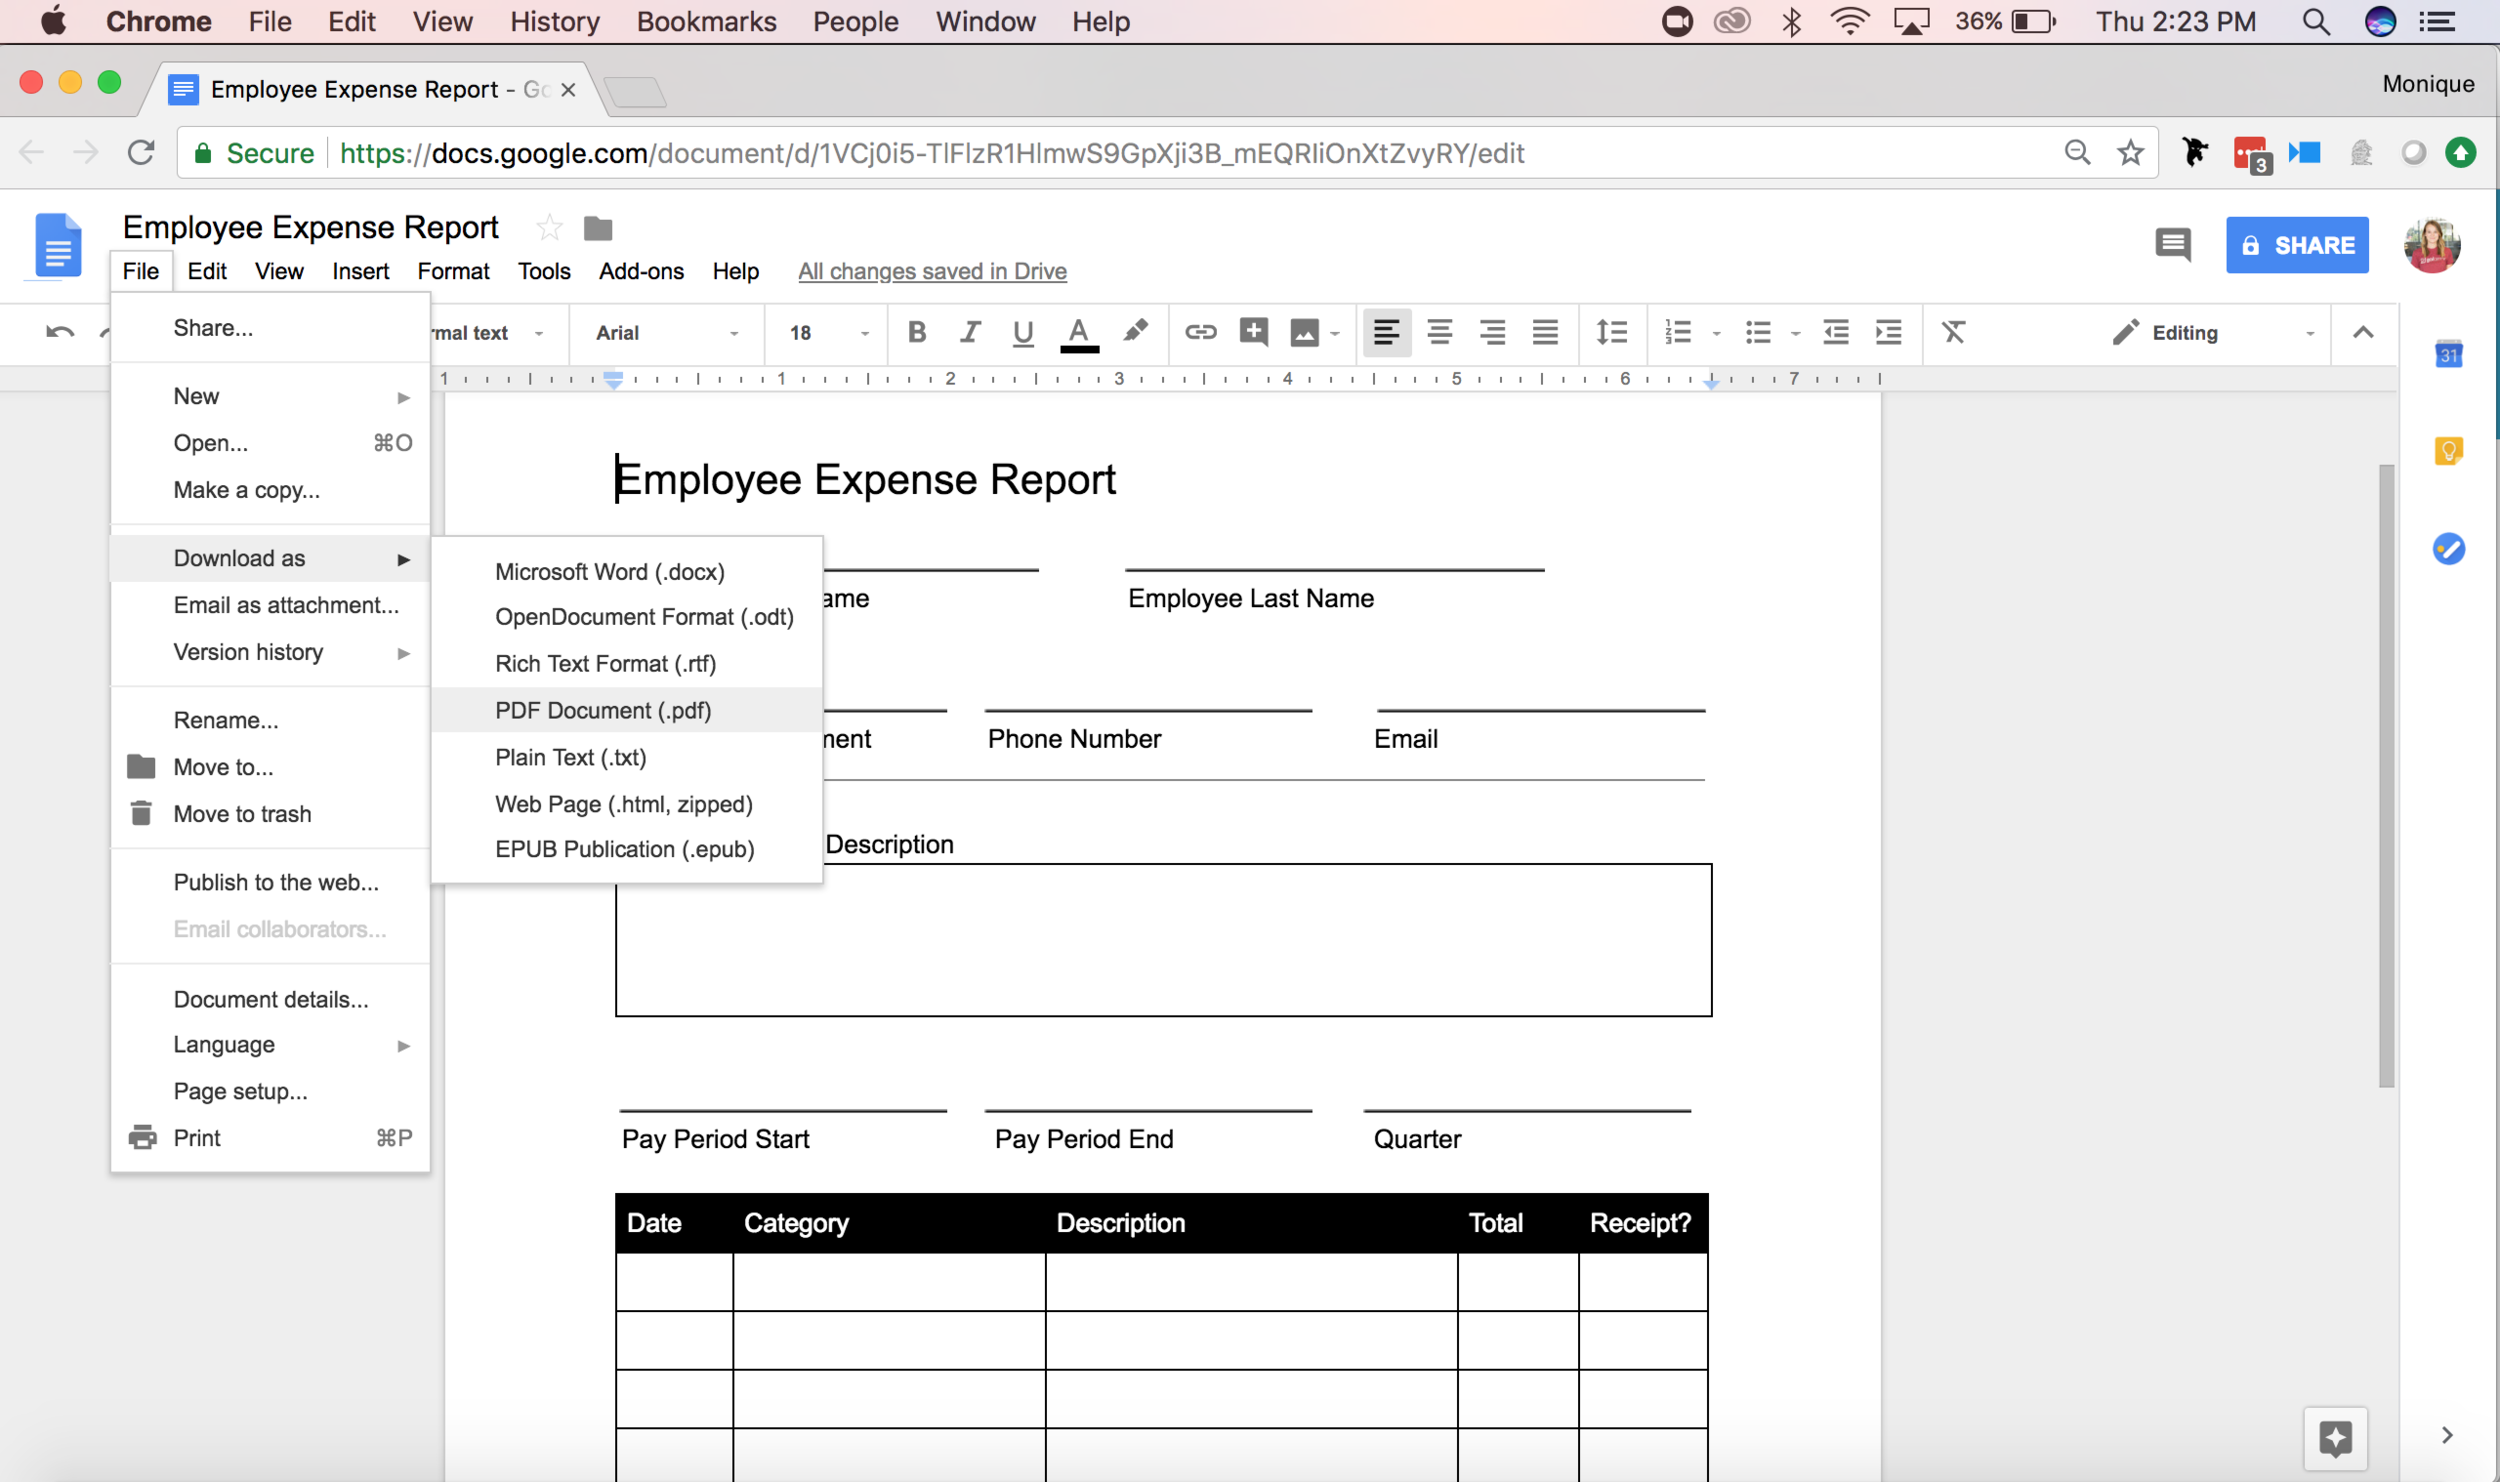 Once you have customized your new form, export is as a PDF and upload to GoFormz